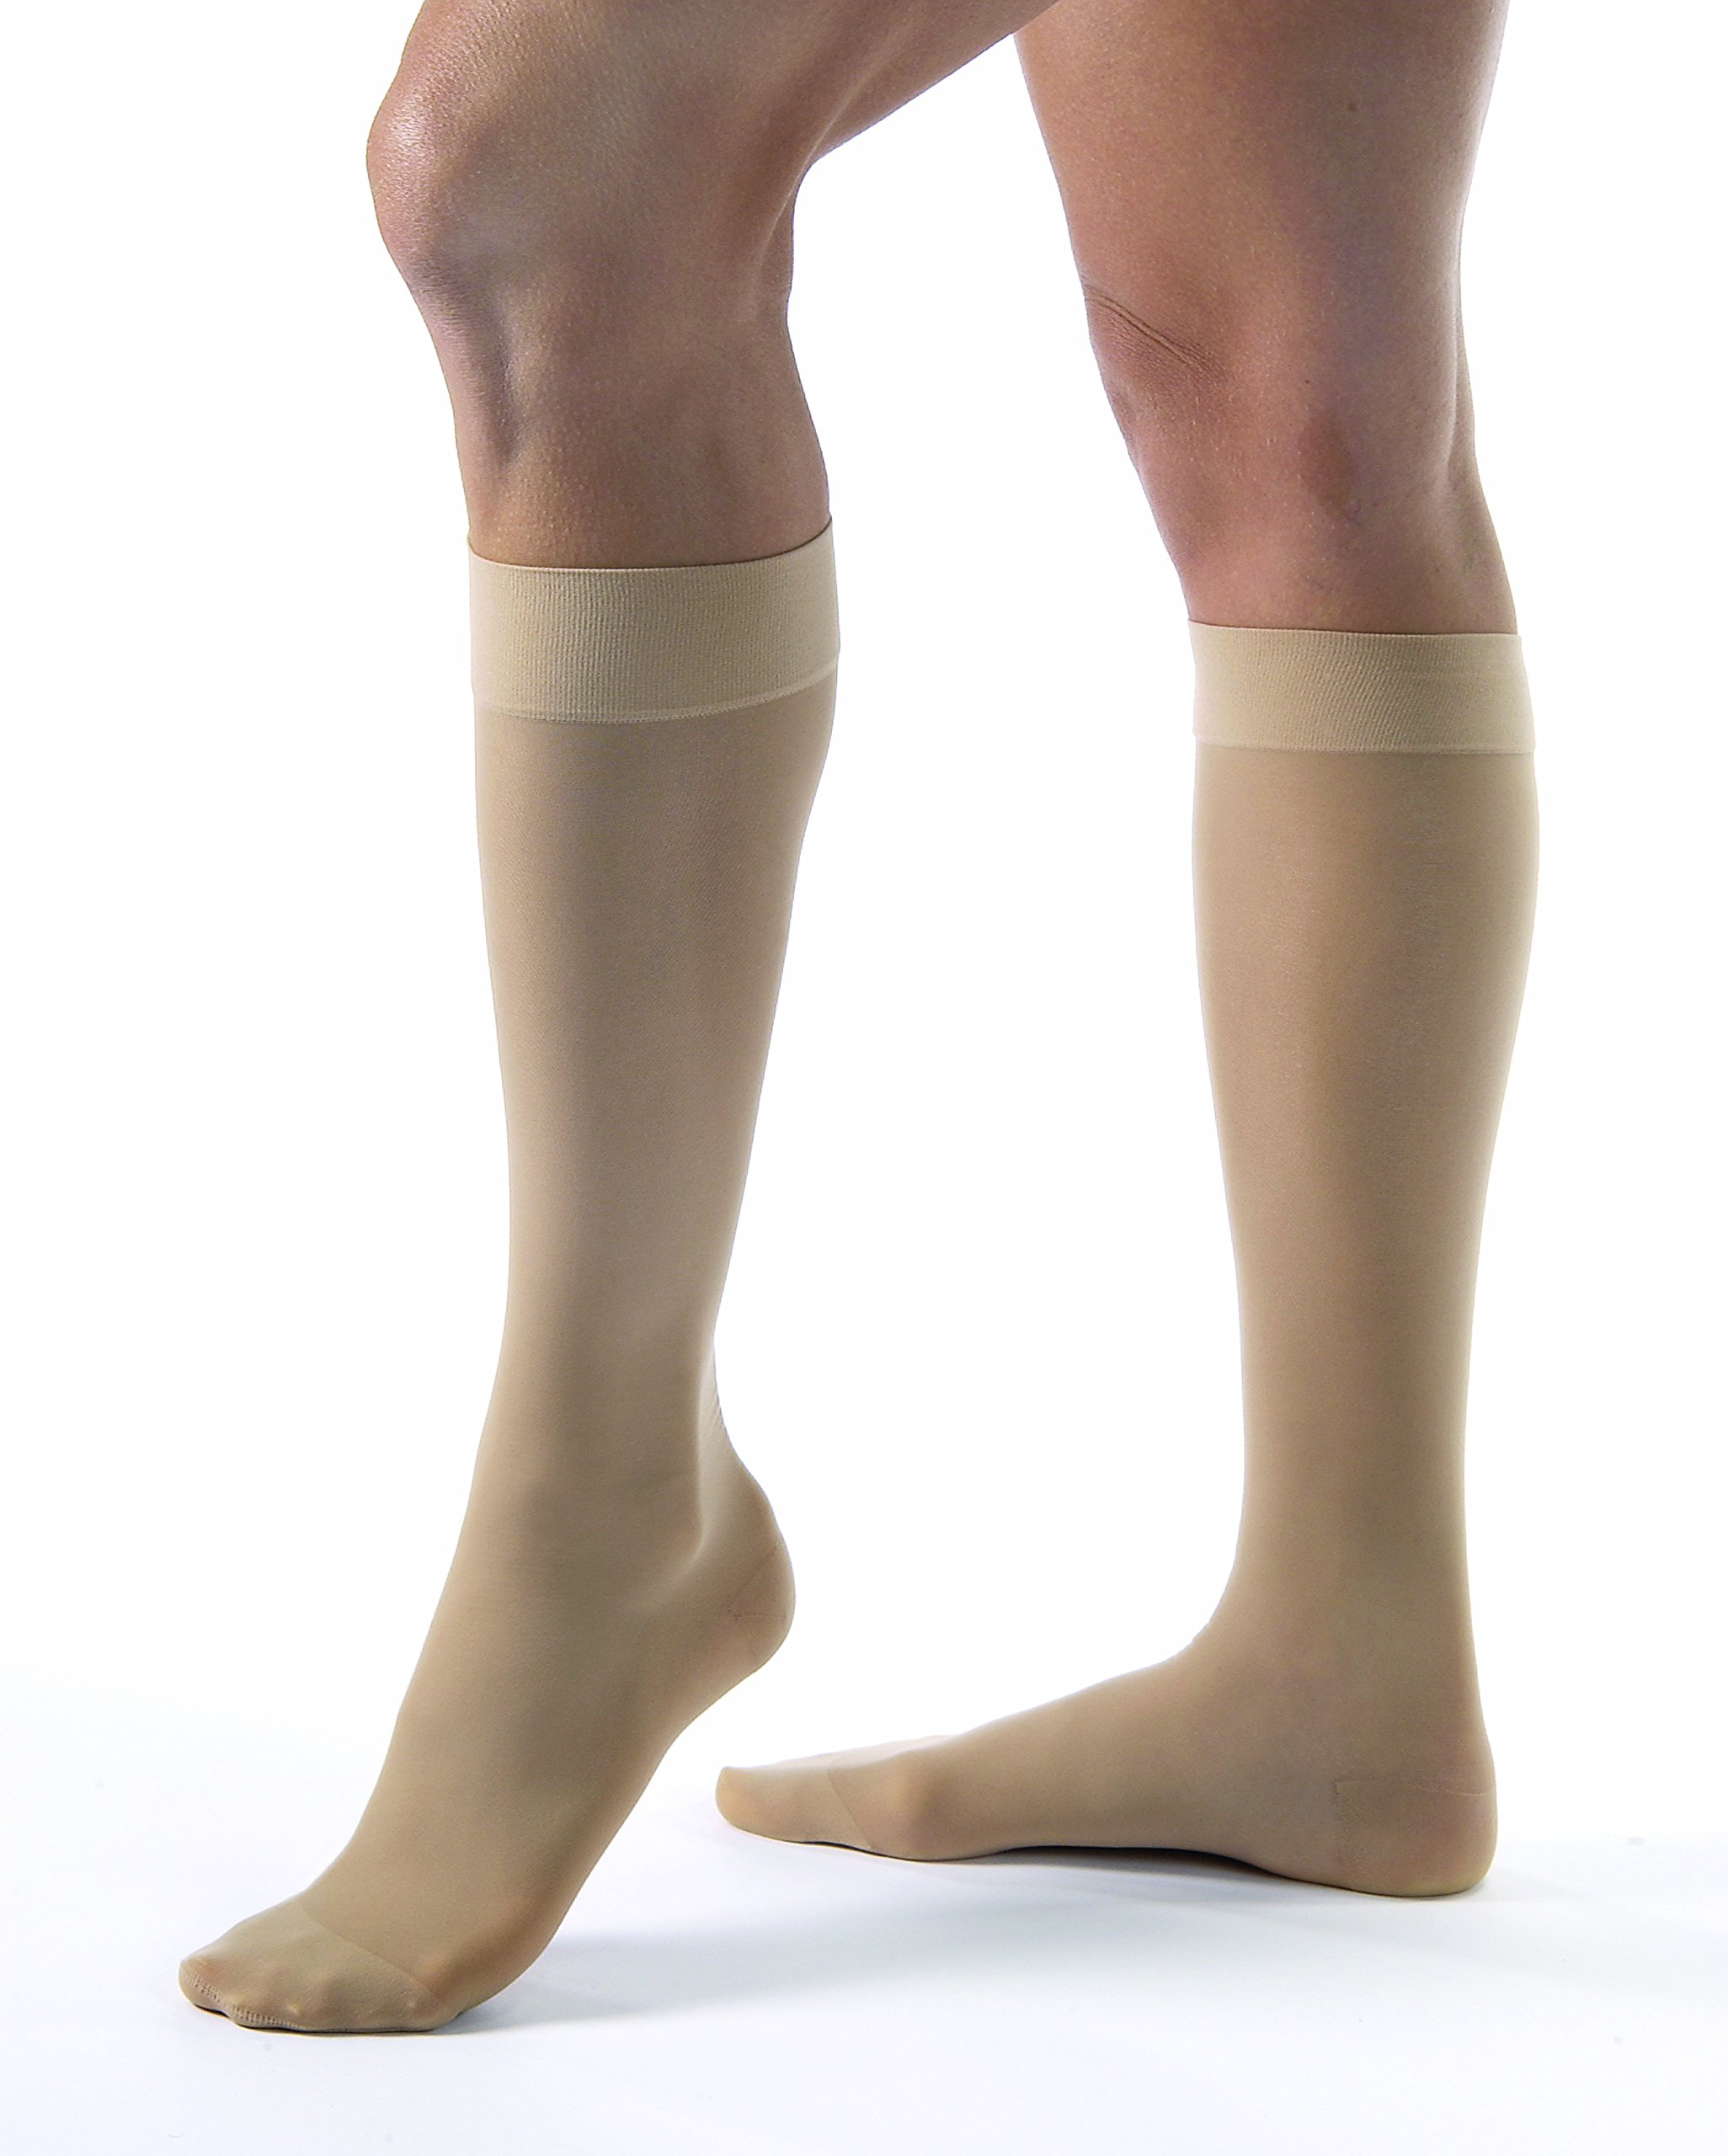 JOBST UltraSheer Knee High with SoftFit Technology Band, 20-30 mmHg Compression Stockings, Closed Toe, Medium, Natural